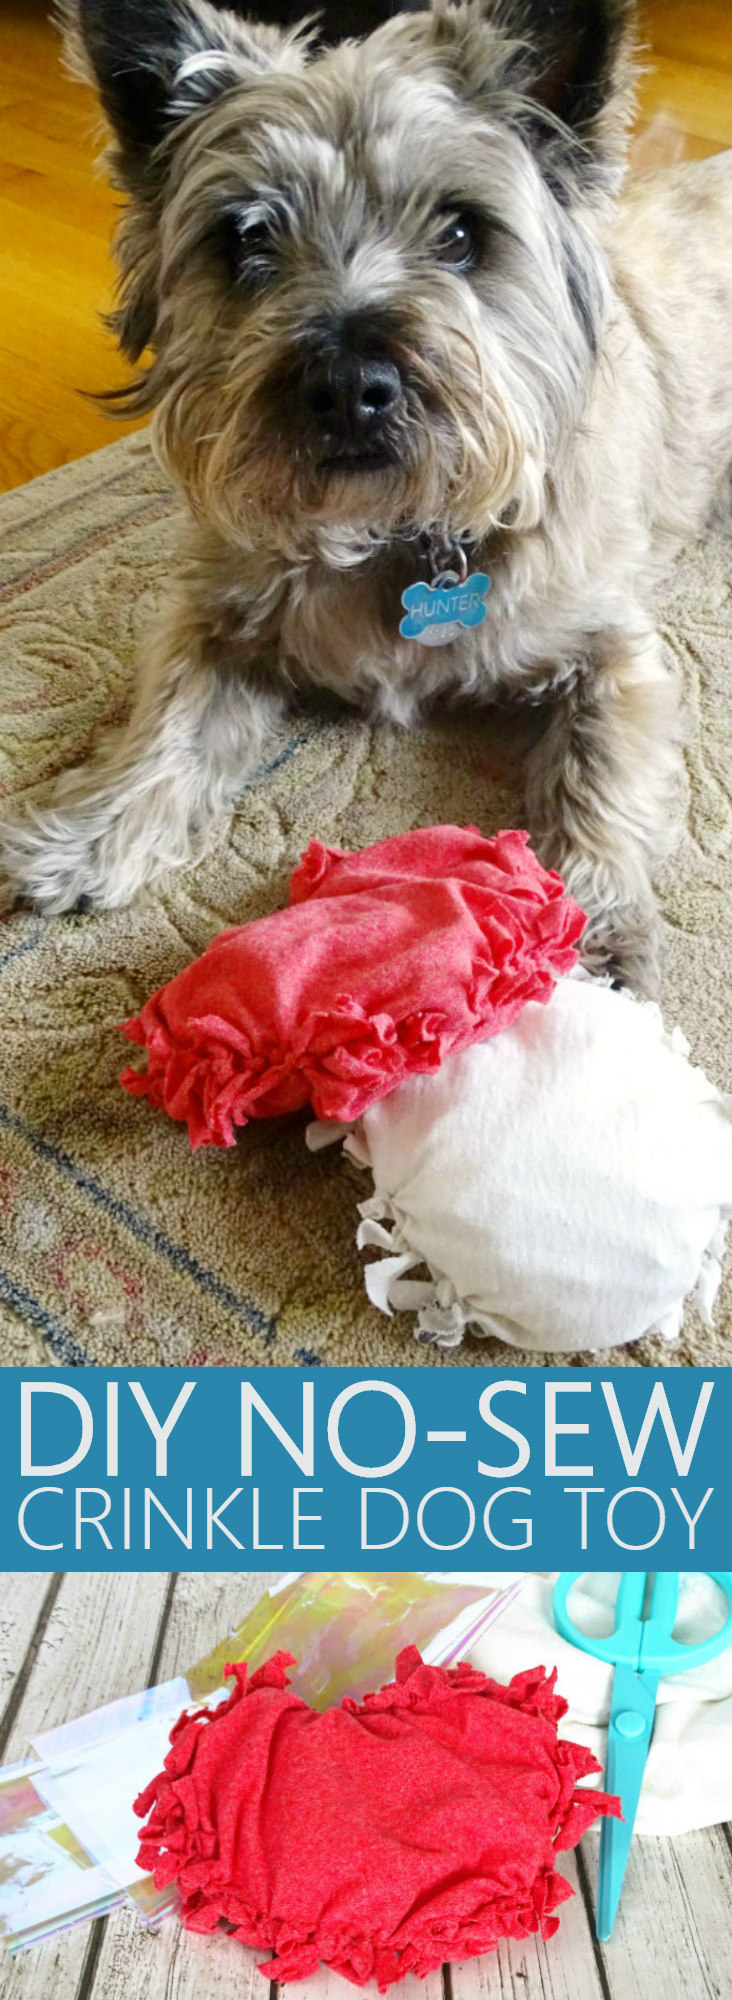 DIY No-Sew Crinkle Dog Toy (Guest Post)